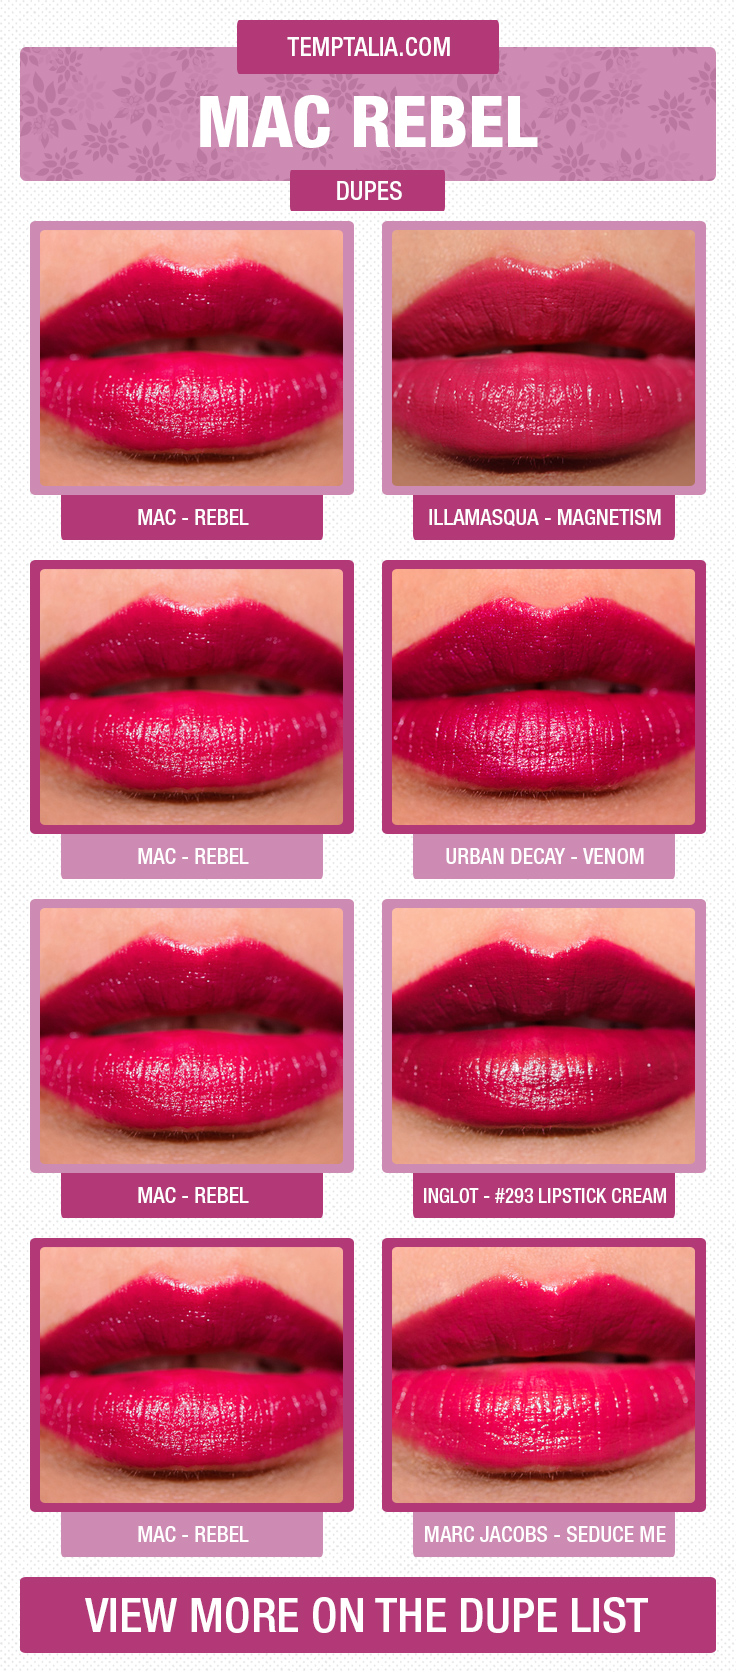 MAC Rebel Dupes